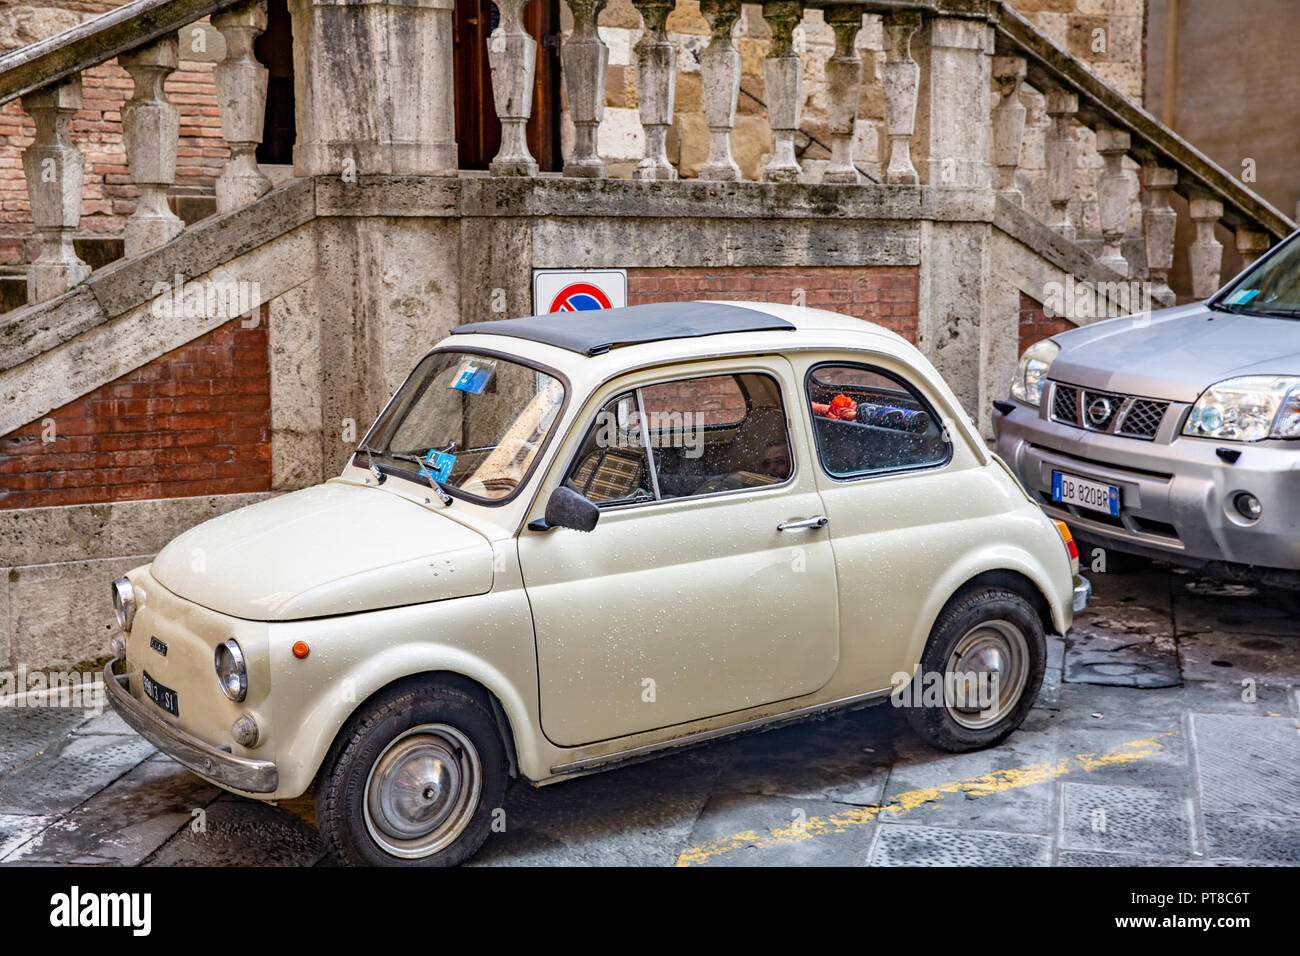 Classic cream coloured Fiat 500 car parked in the streets of Siena,Tuscany,Italy - Stock Image